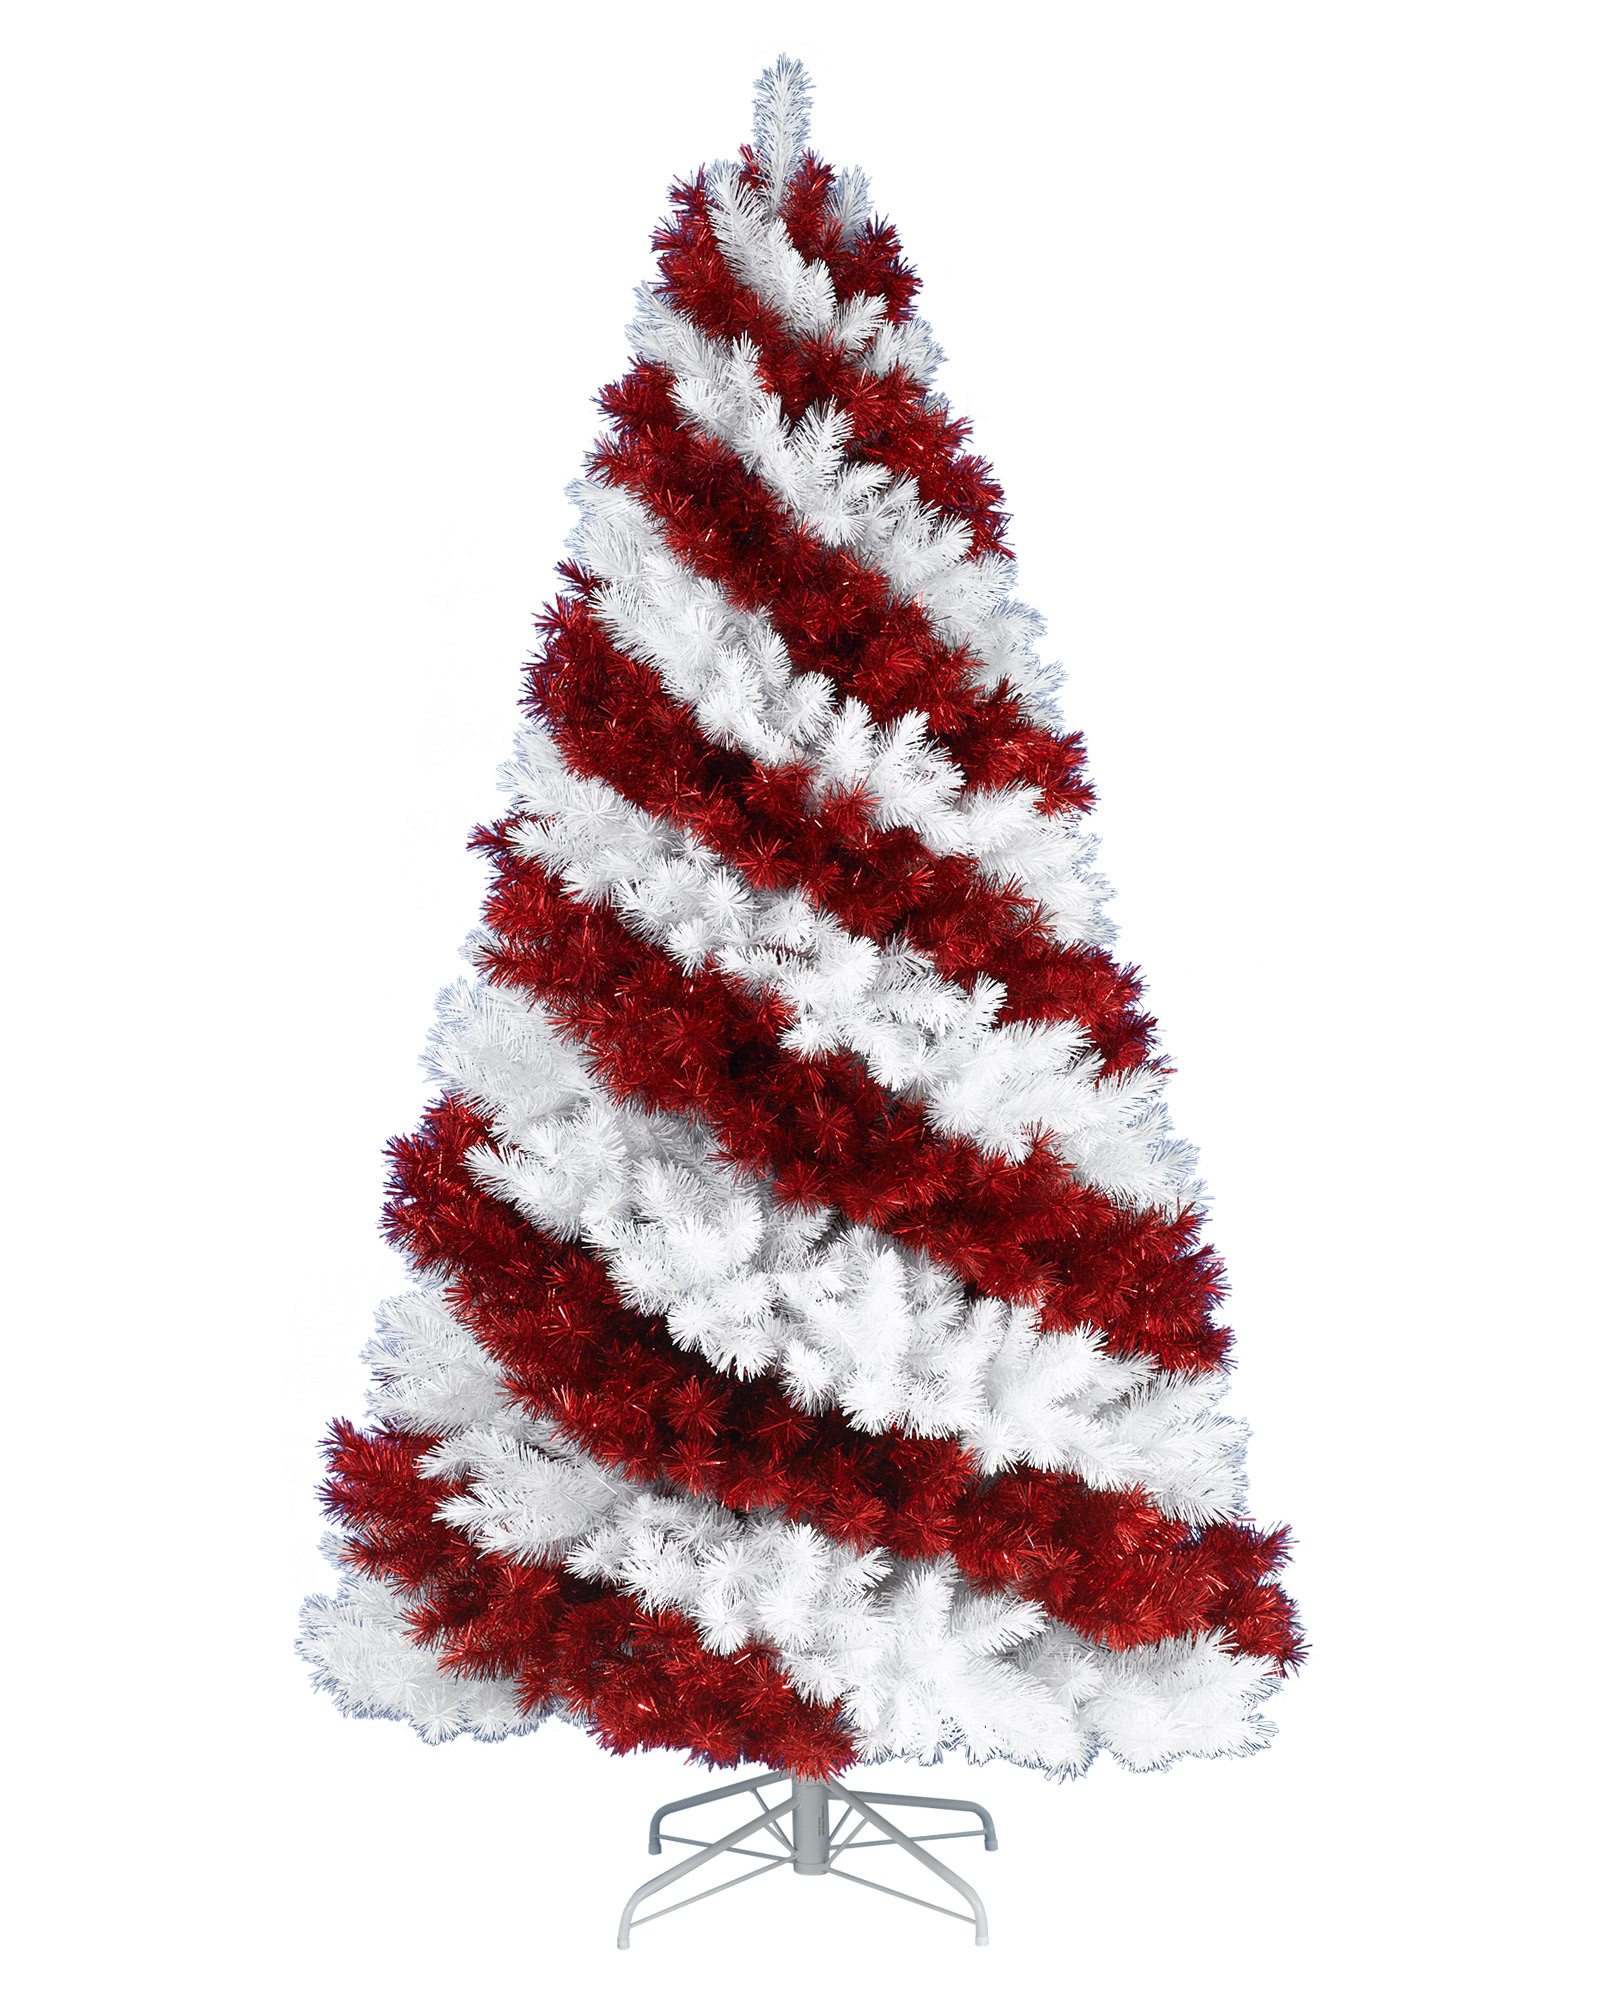 Peppermint Candy Christmas Tree  Candy Cane Christmas Trees line